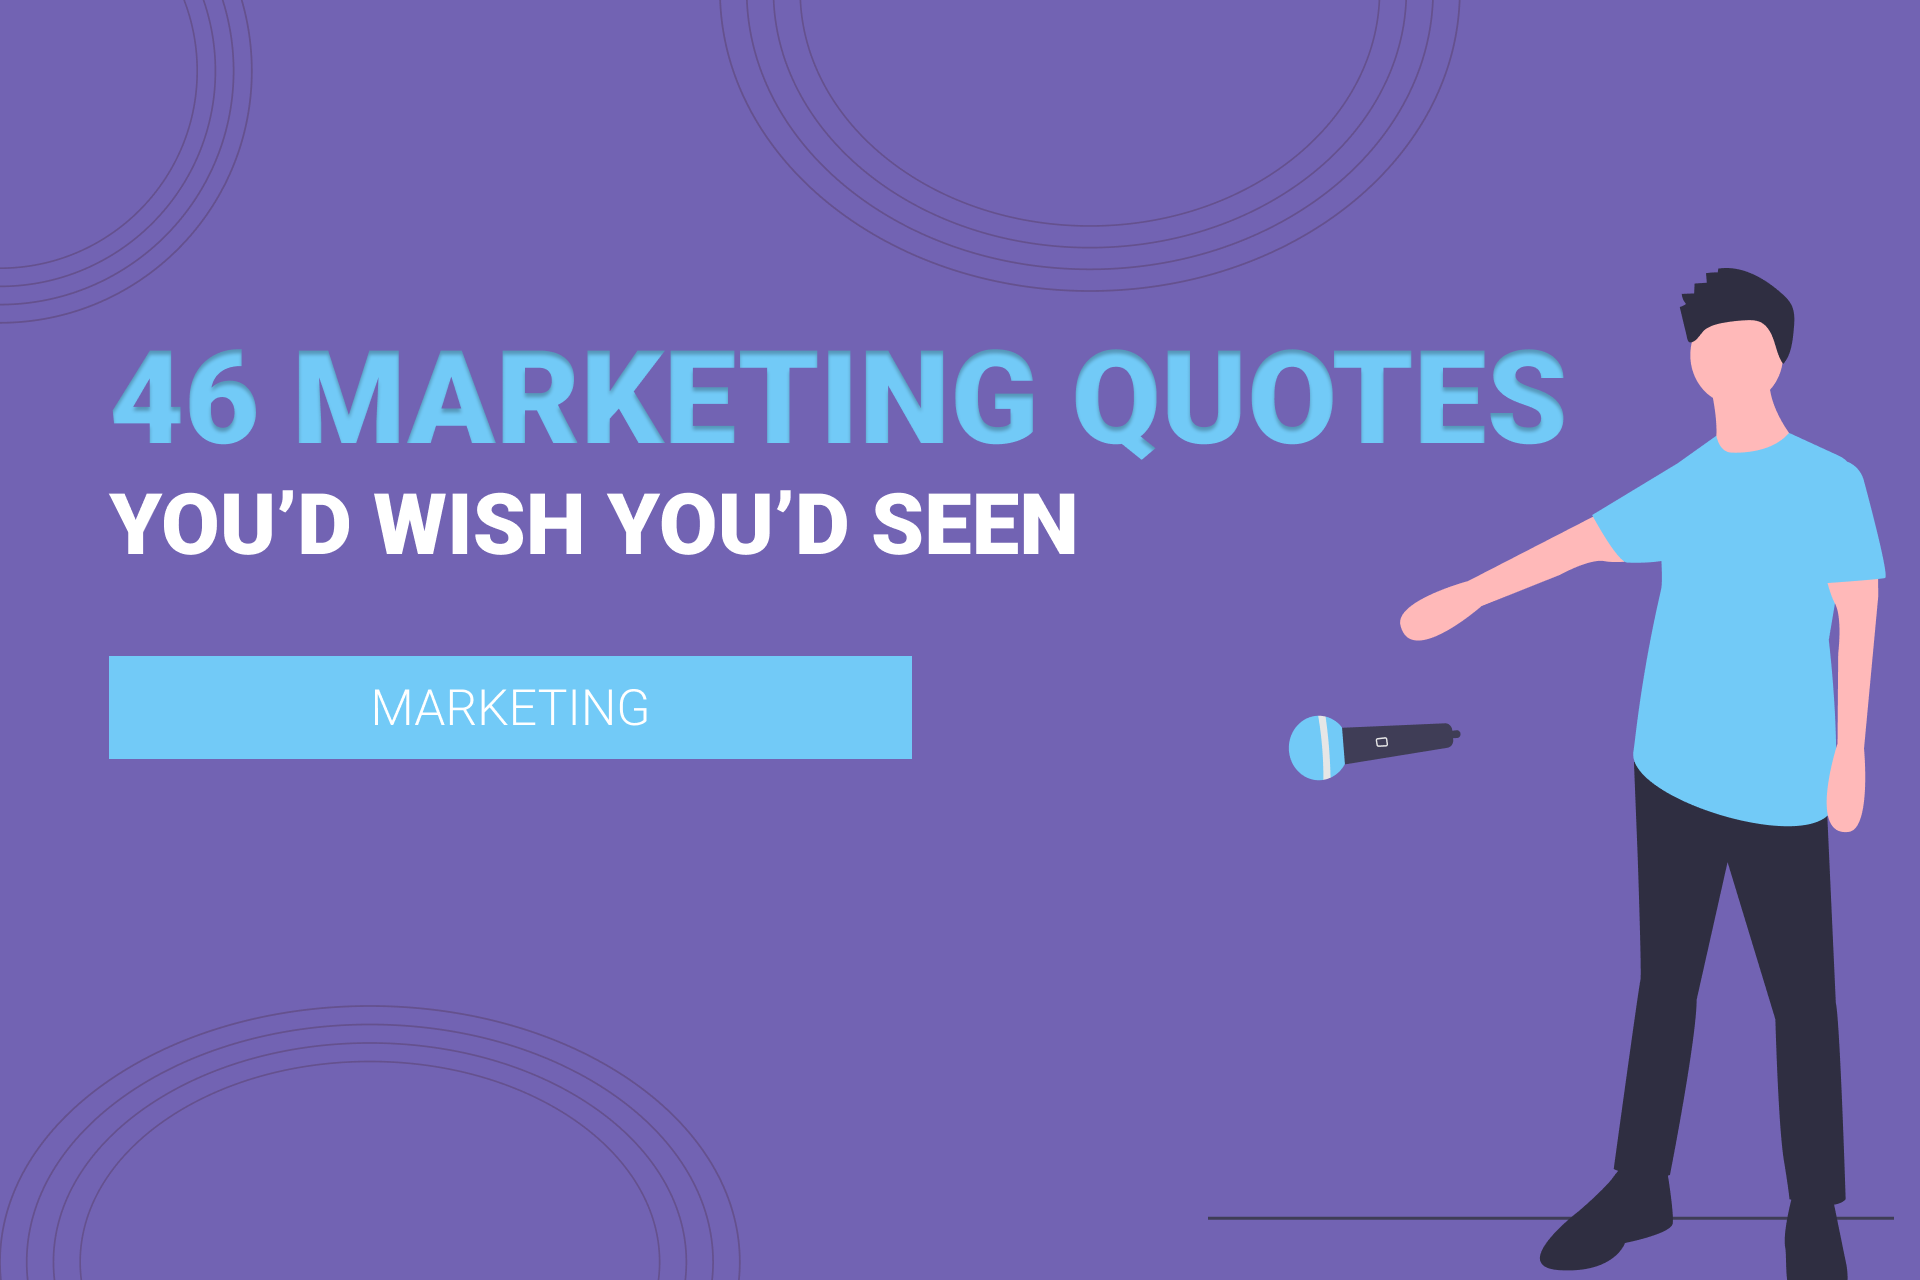 46 Digital Marketing Quotes You'd Wish You'd Seen